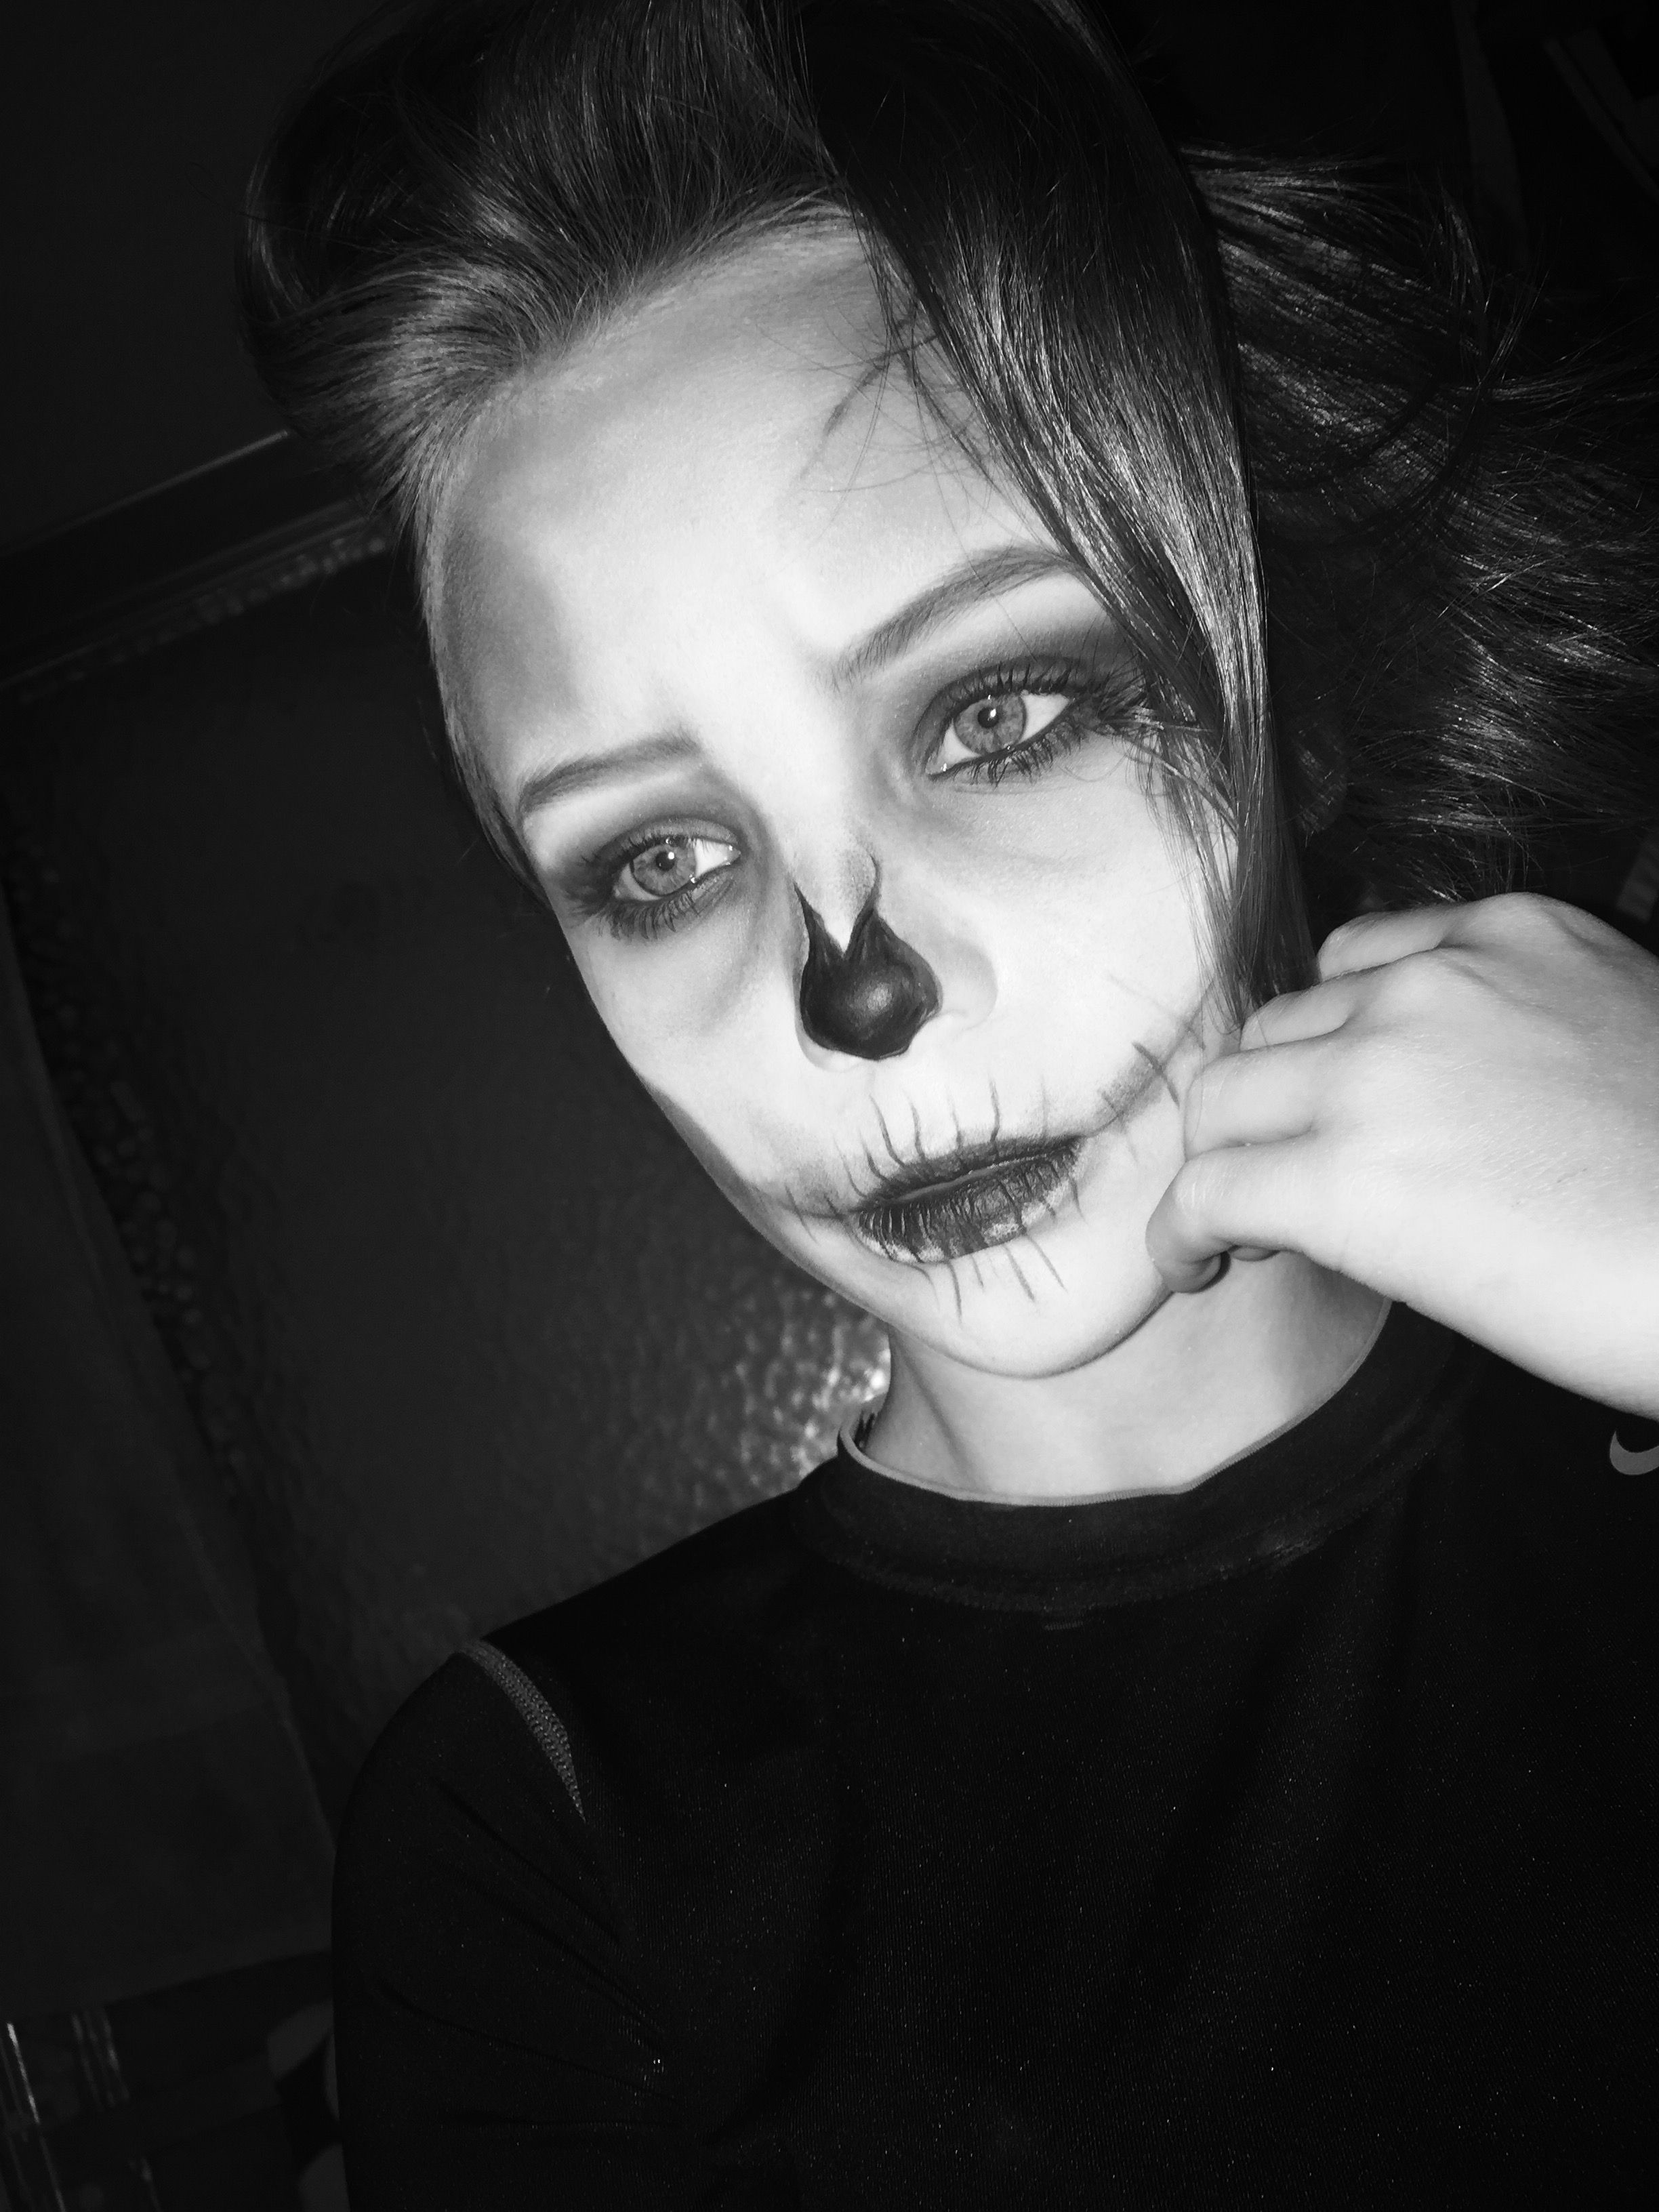 Pin by Cassidy Majer on Cassidys fx makeup | Fx makeup